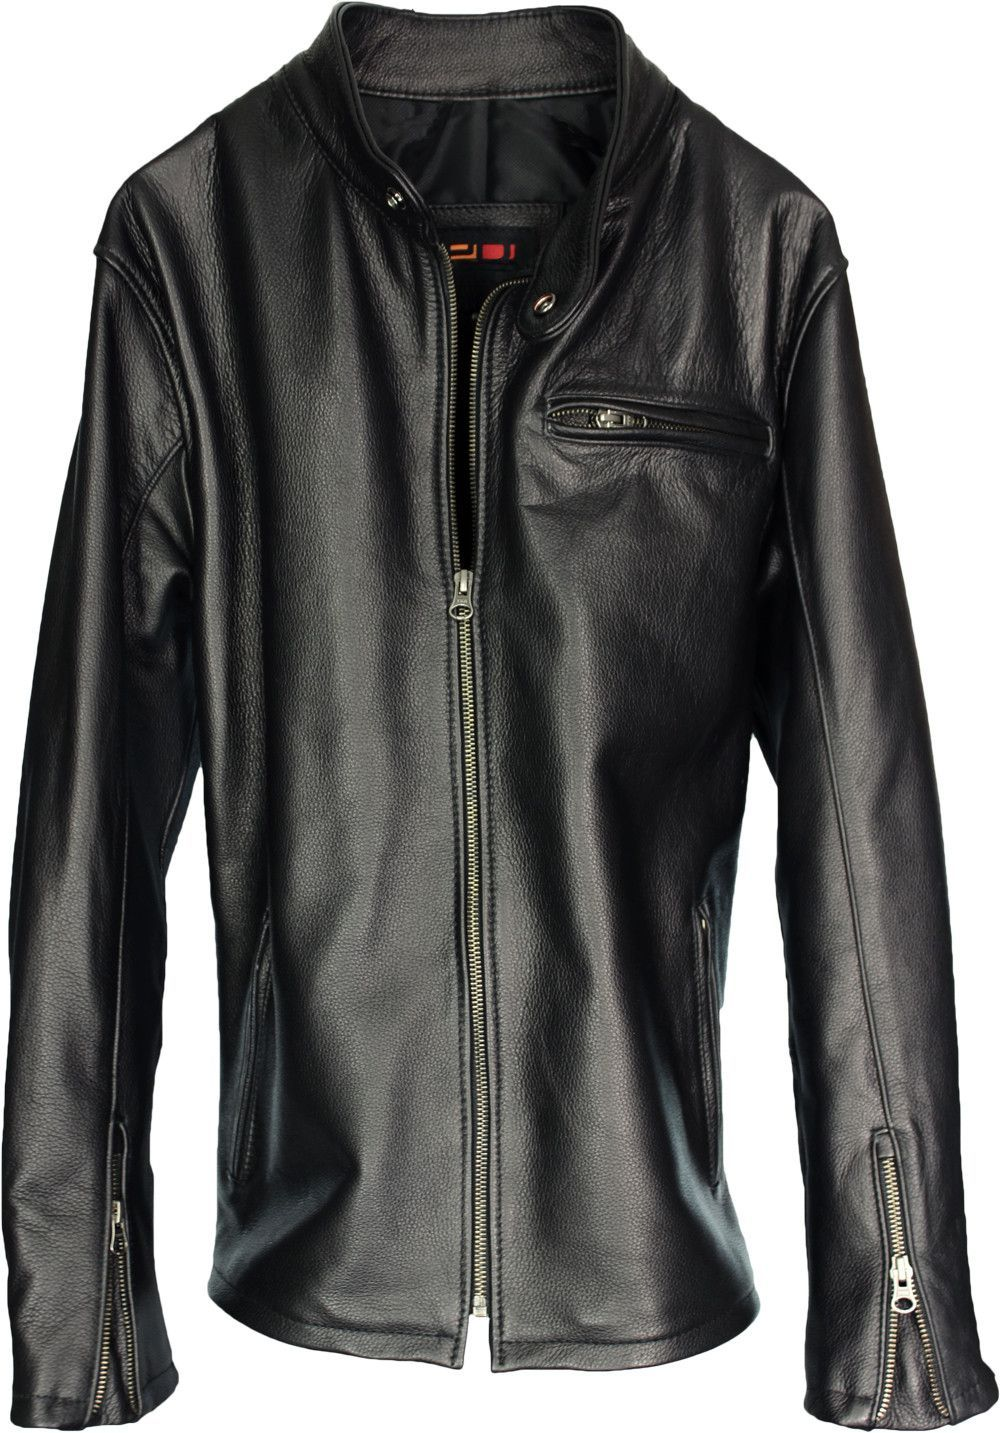 R79 Leather Jacket Motorcycle Solid Black Jackets, Solid